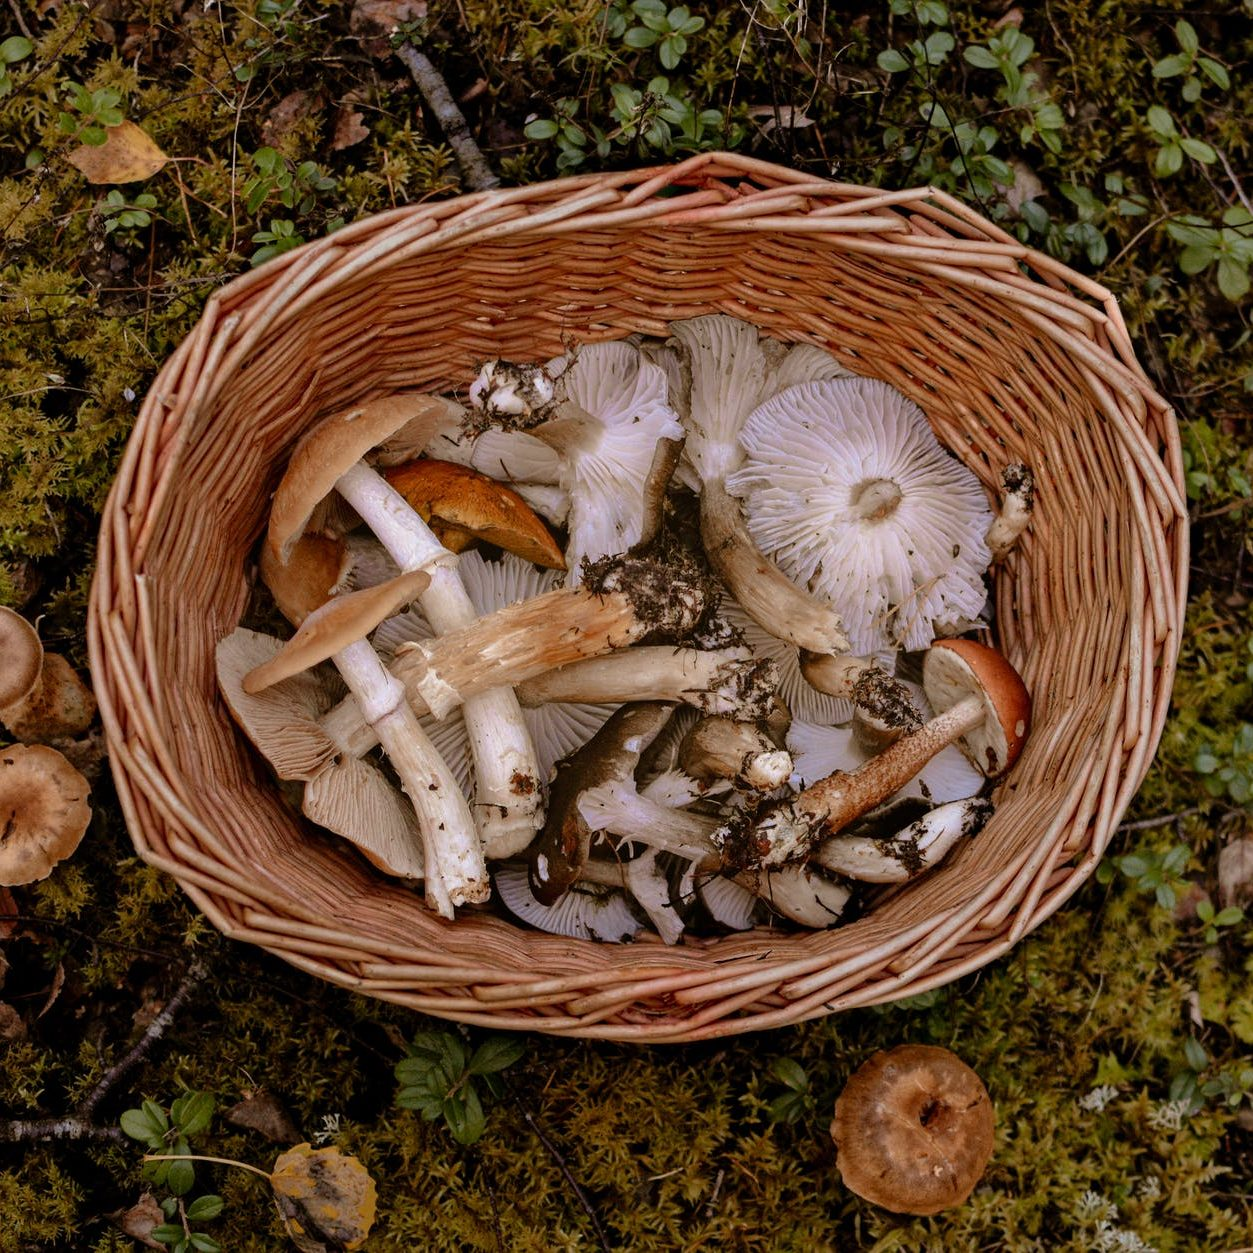 brown and white mushrooms in brown woven basket